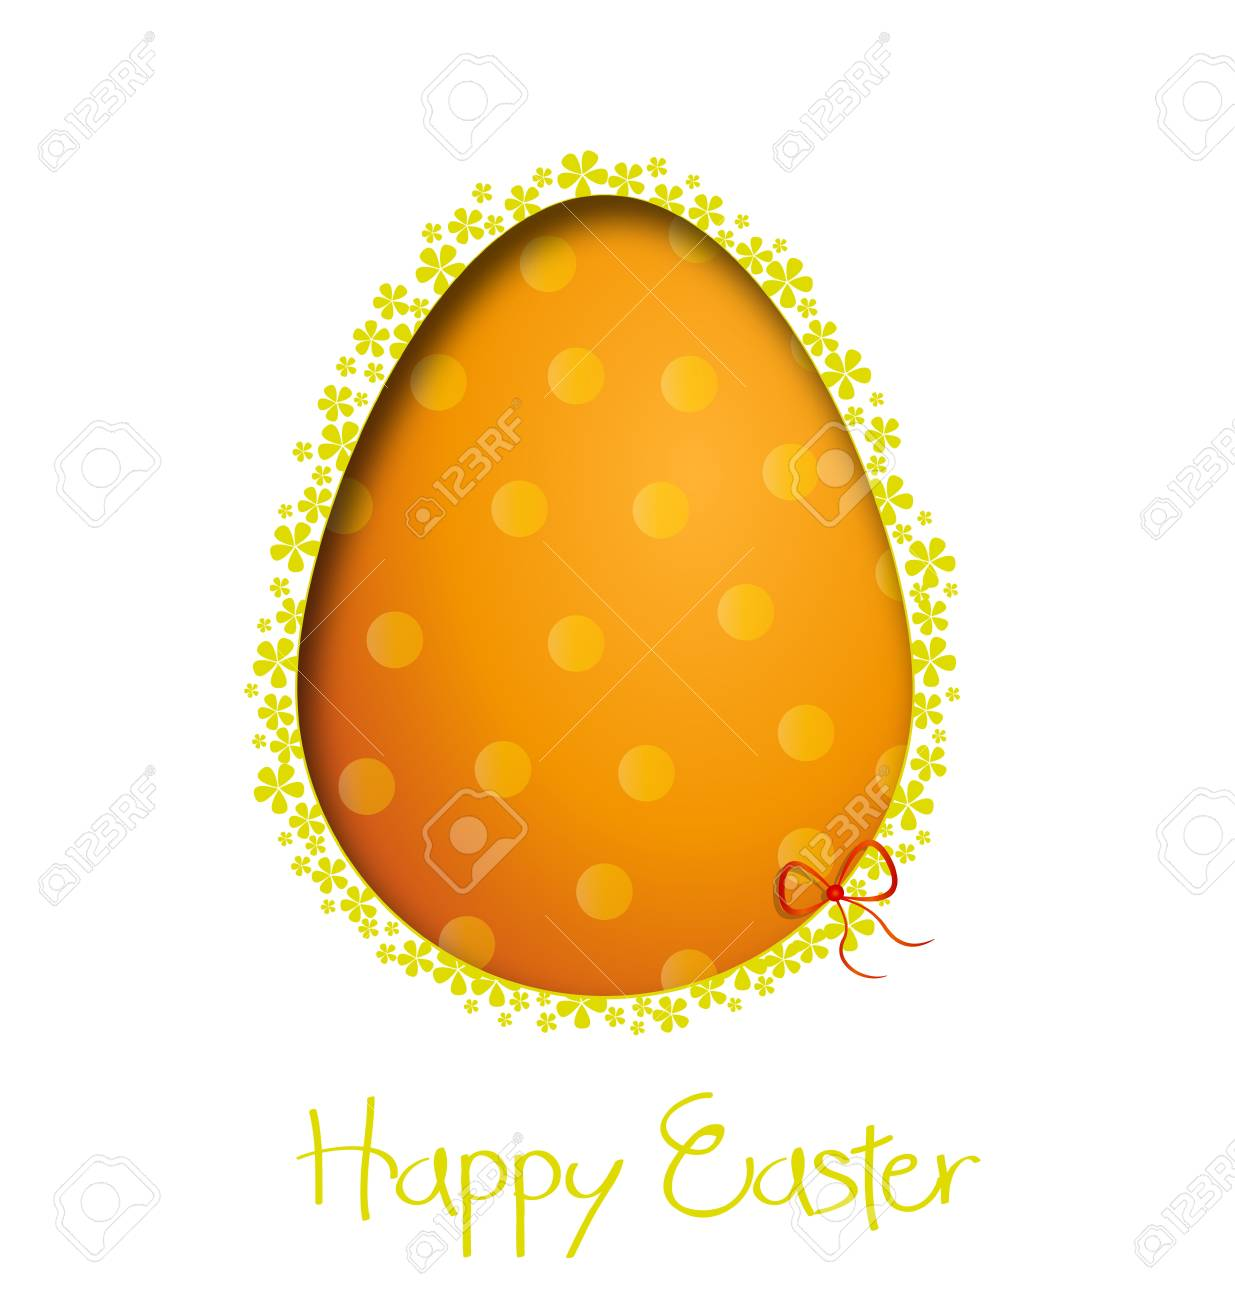 easter background with egg illustration Stock Vector - 17081254